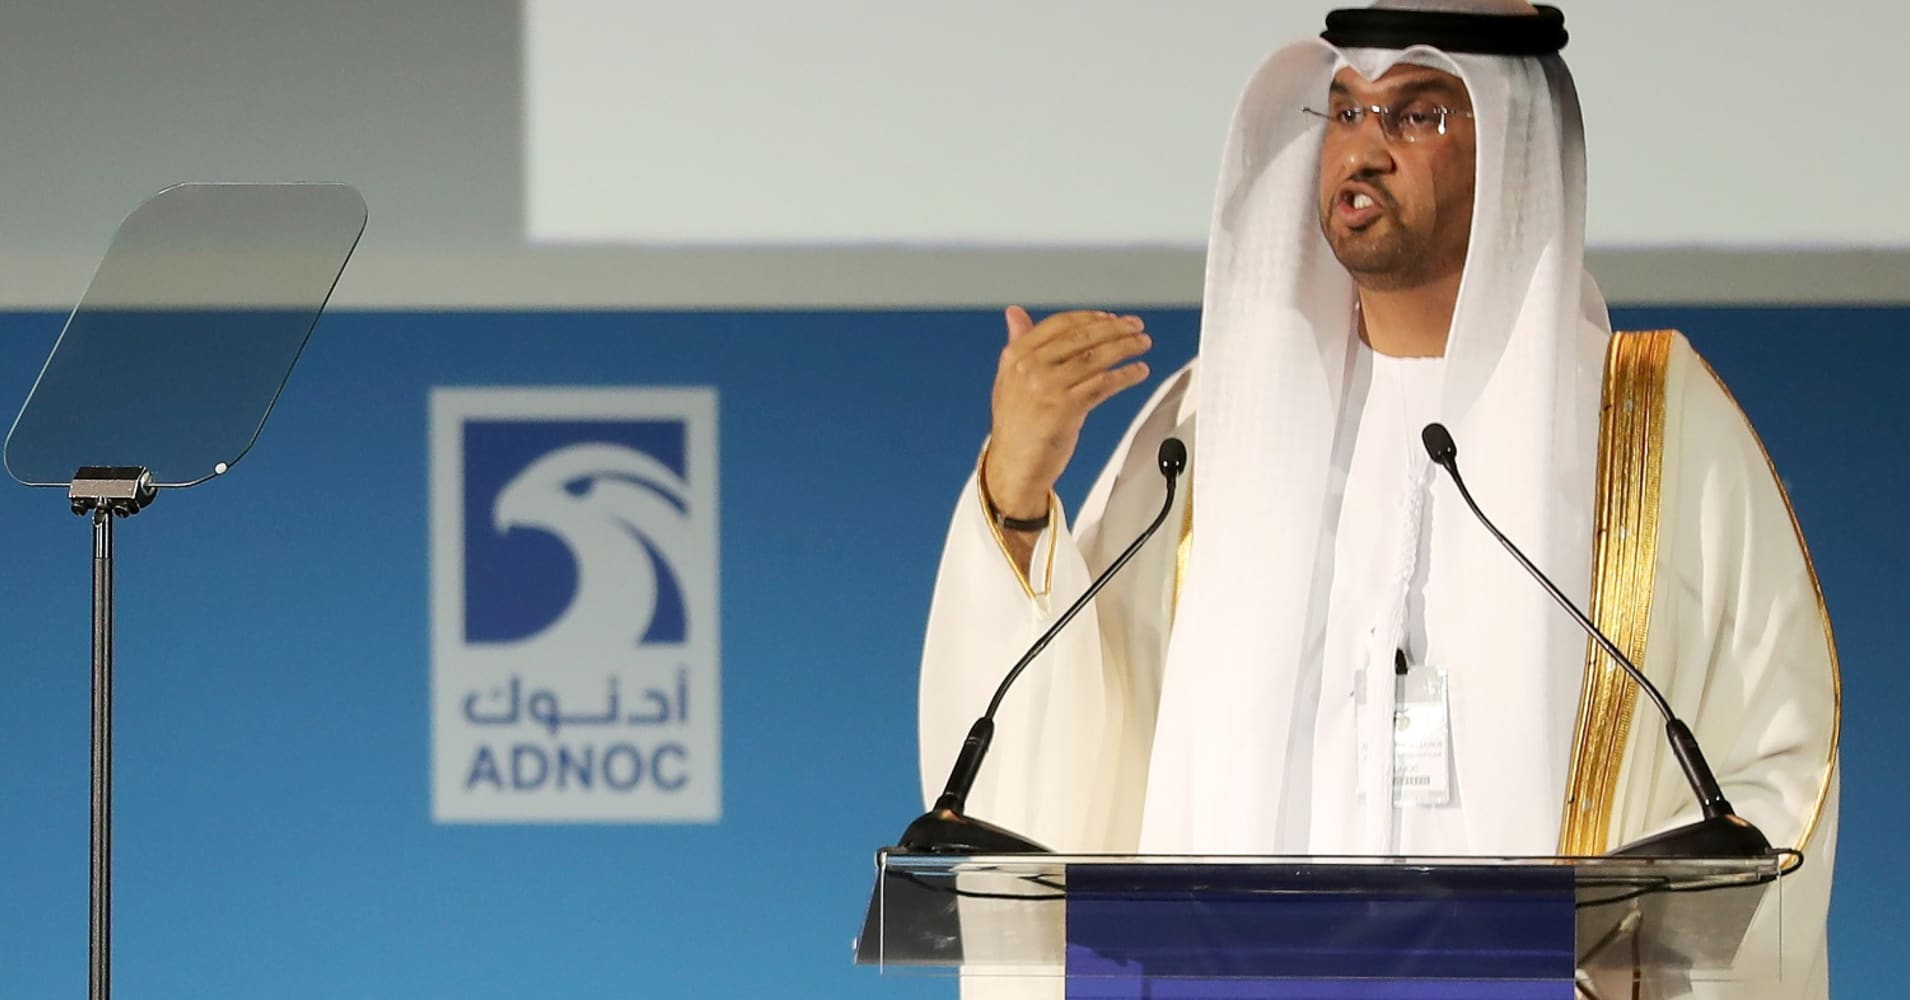 ADNOC CEO sees a 'huge growth opportunity' in the oil refining sector